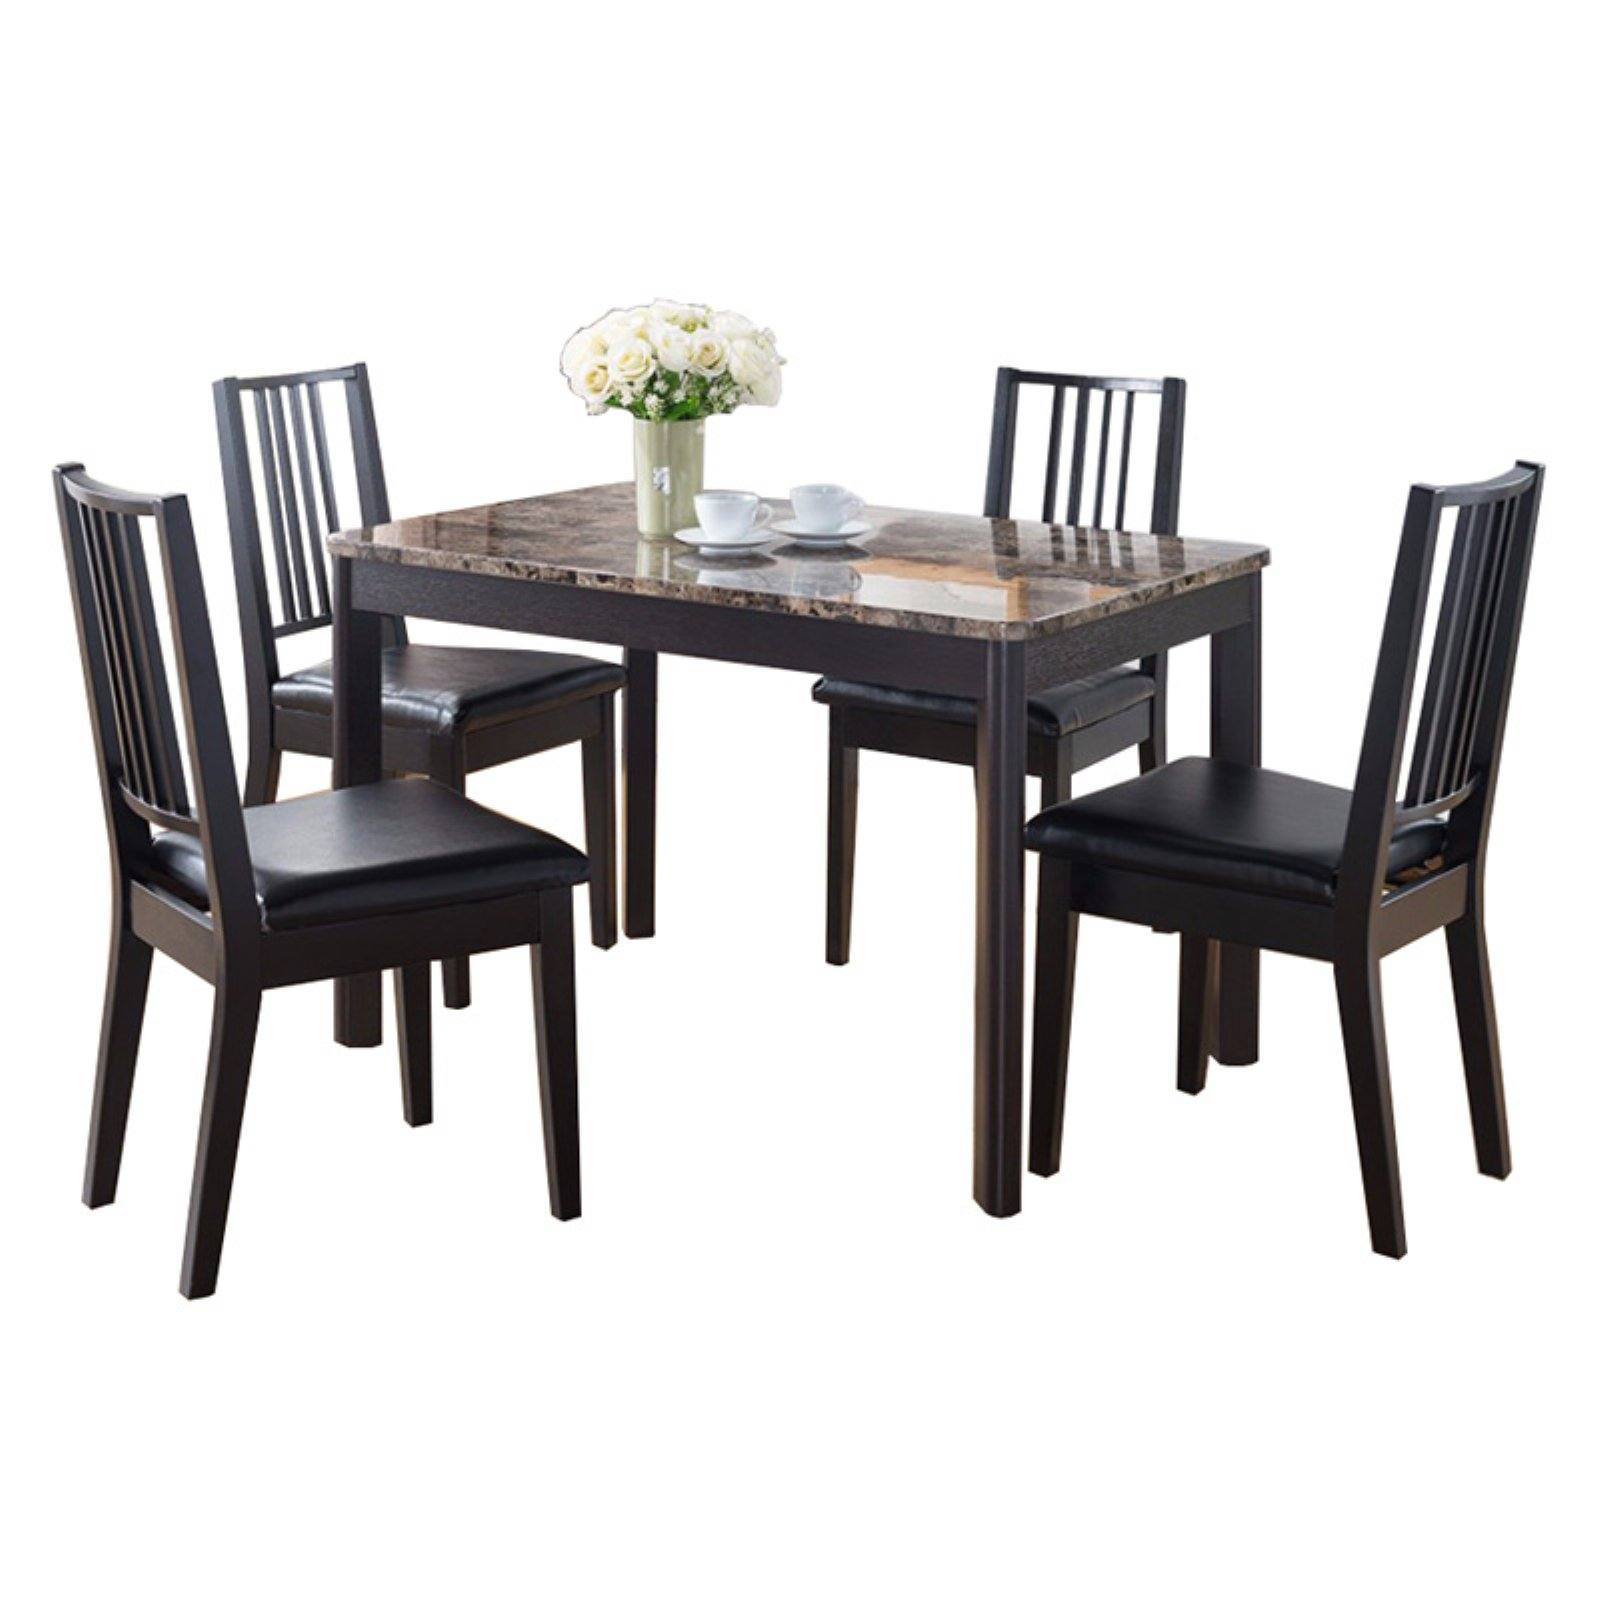 Faux Marble Top Splendid Dining Table, Dark brown